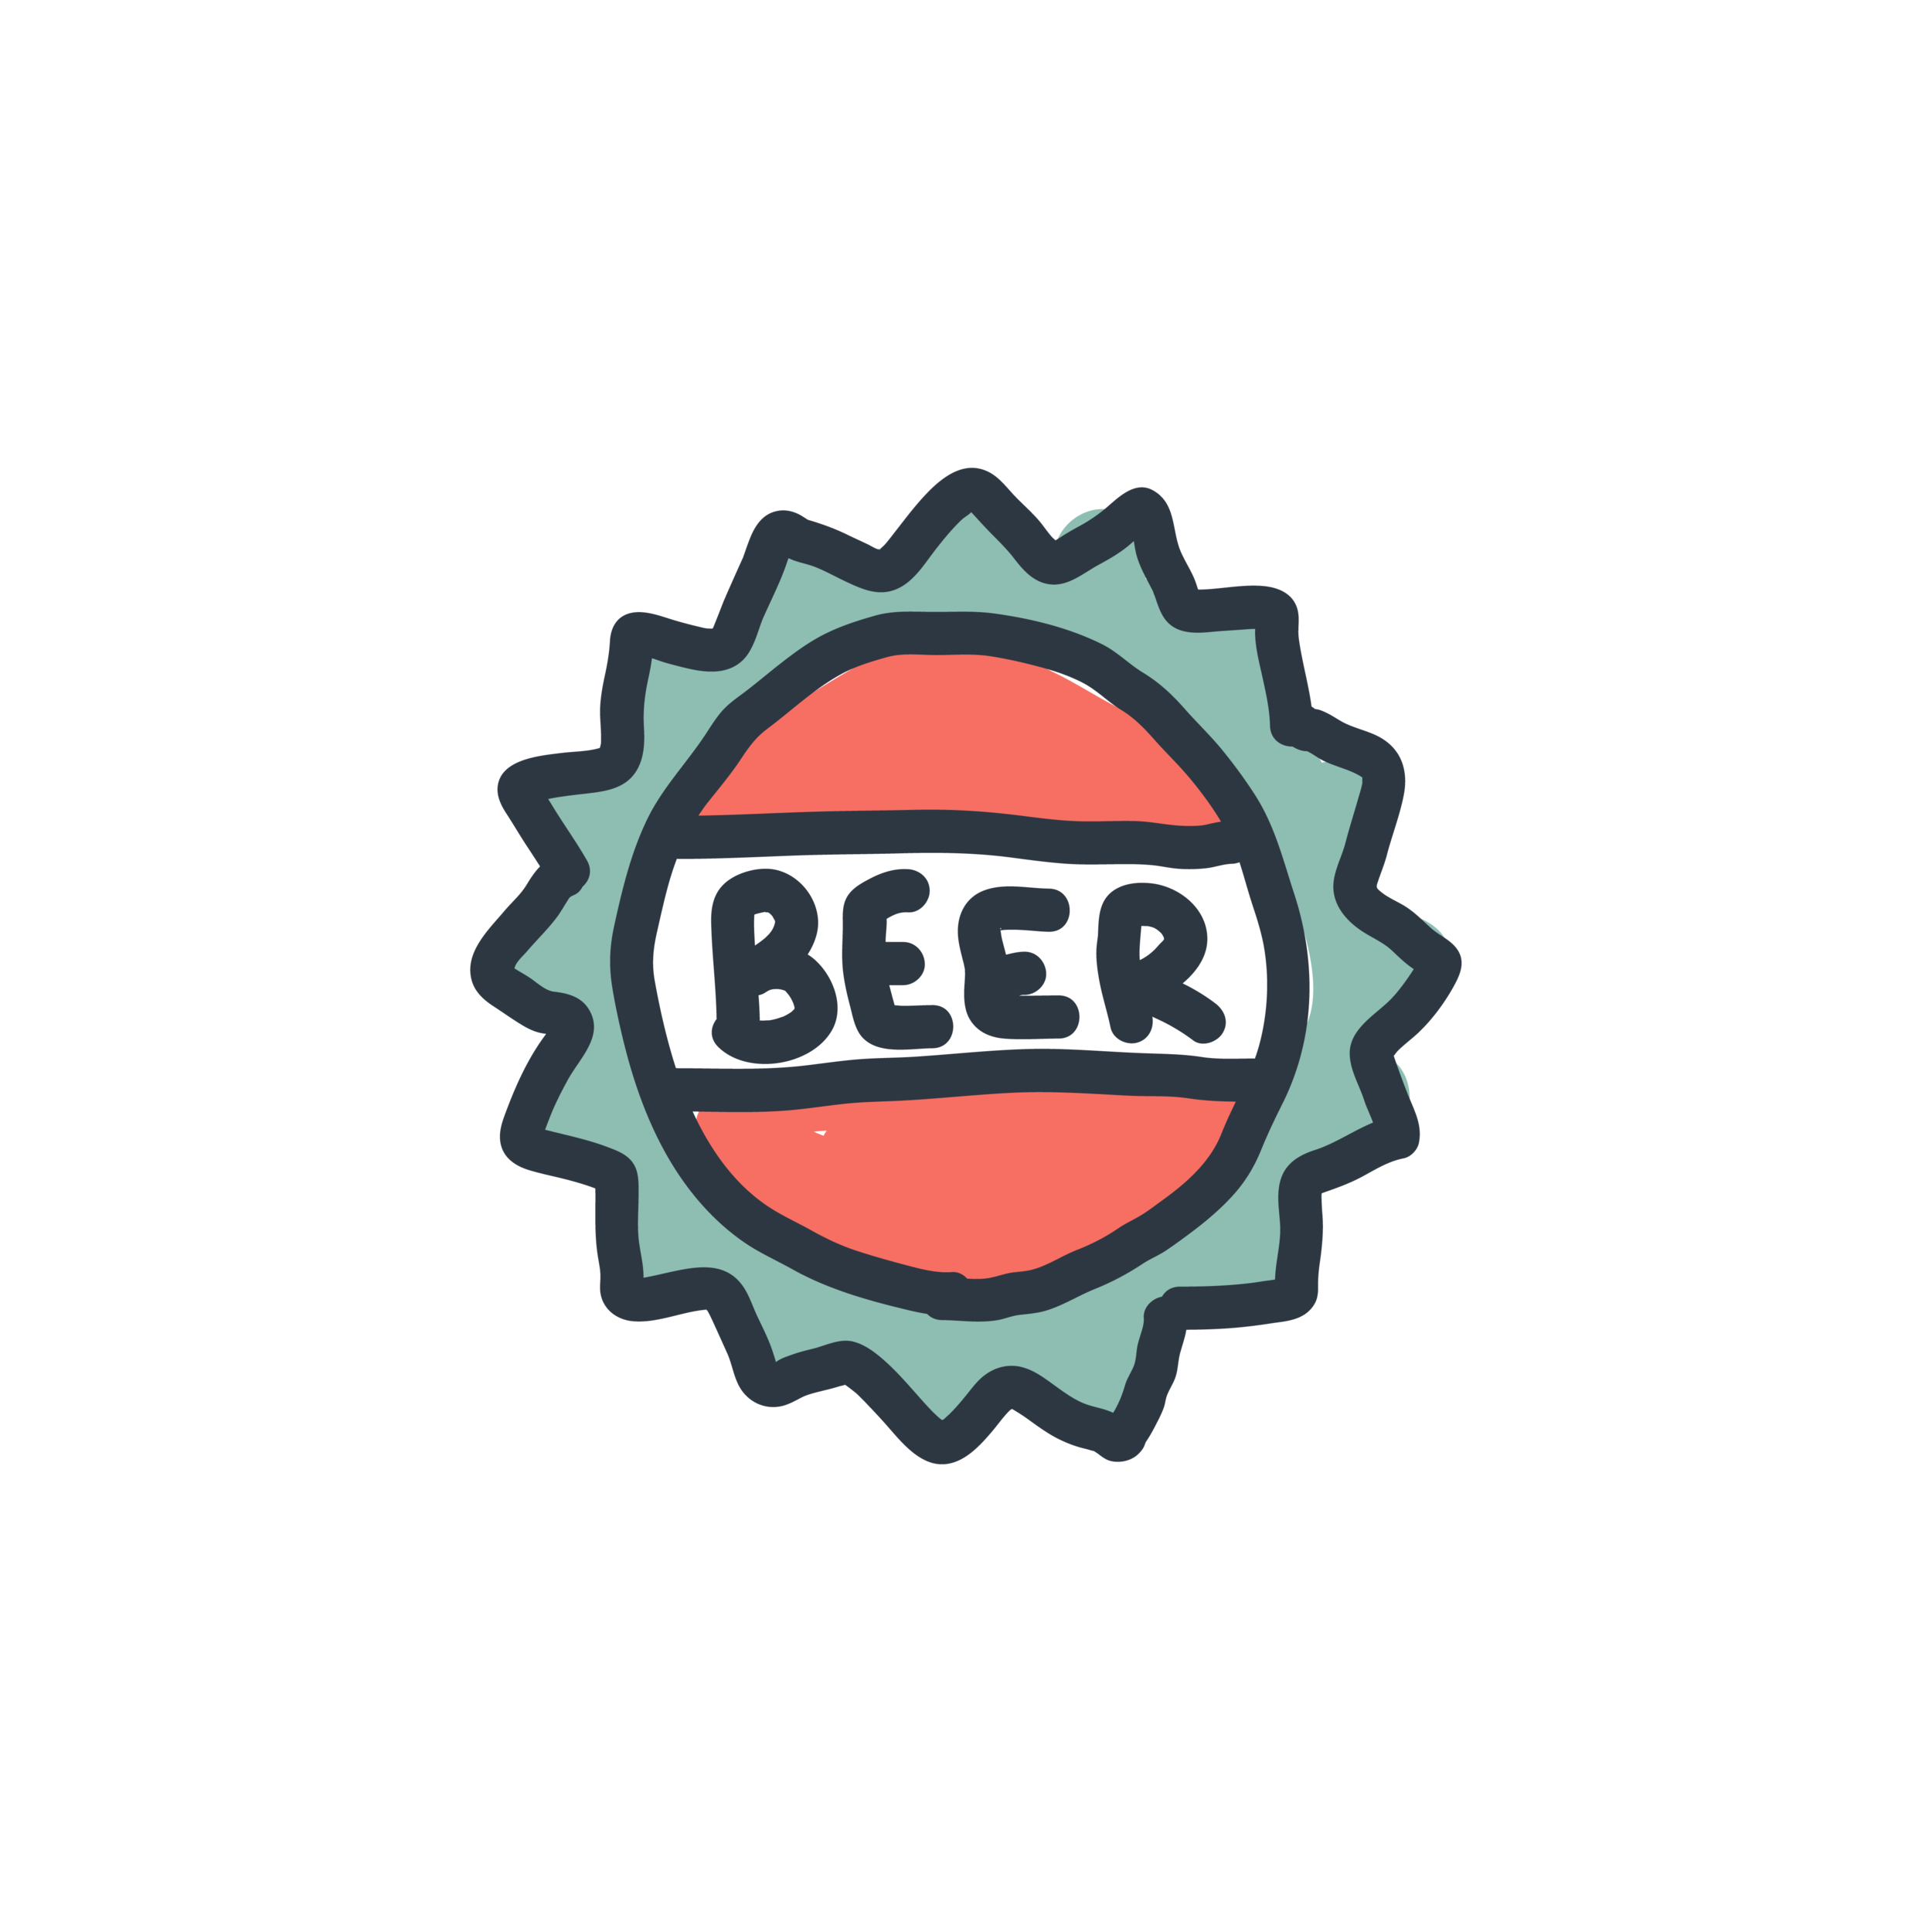 TBR_Icon-BeerLabel.png